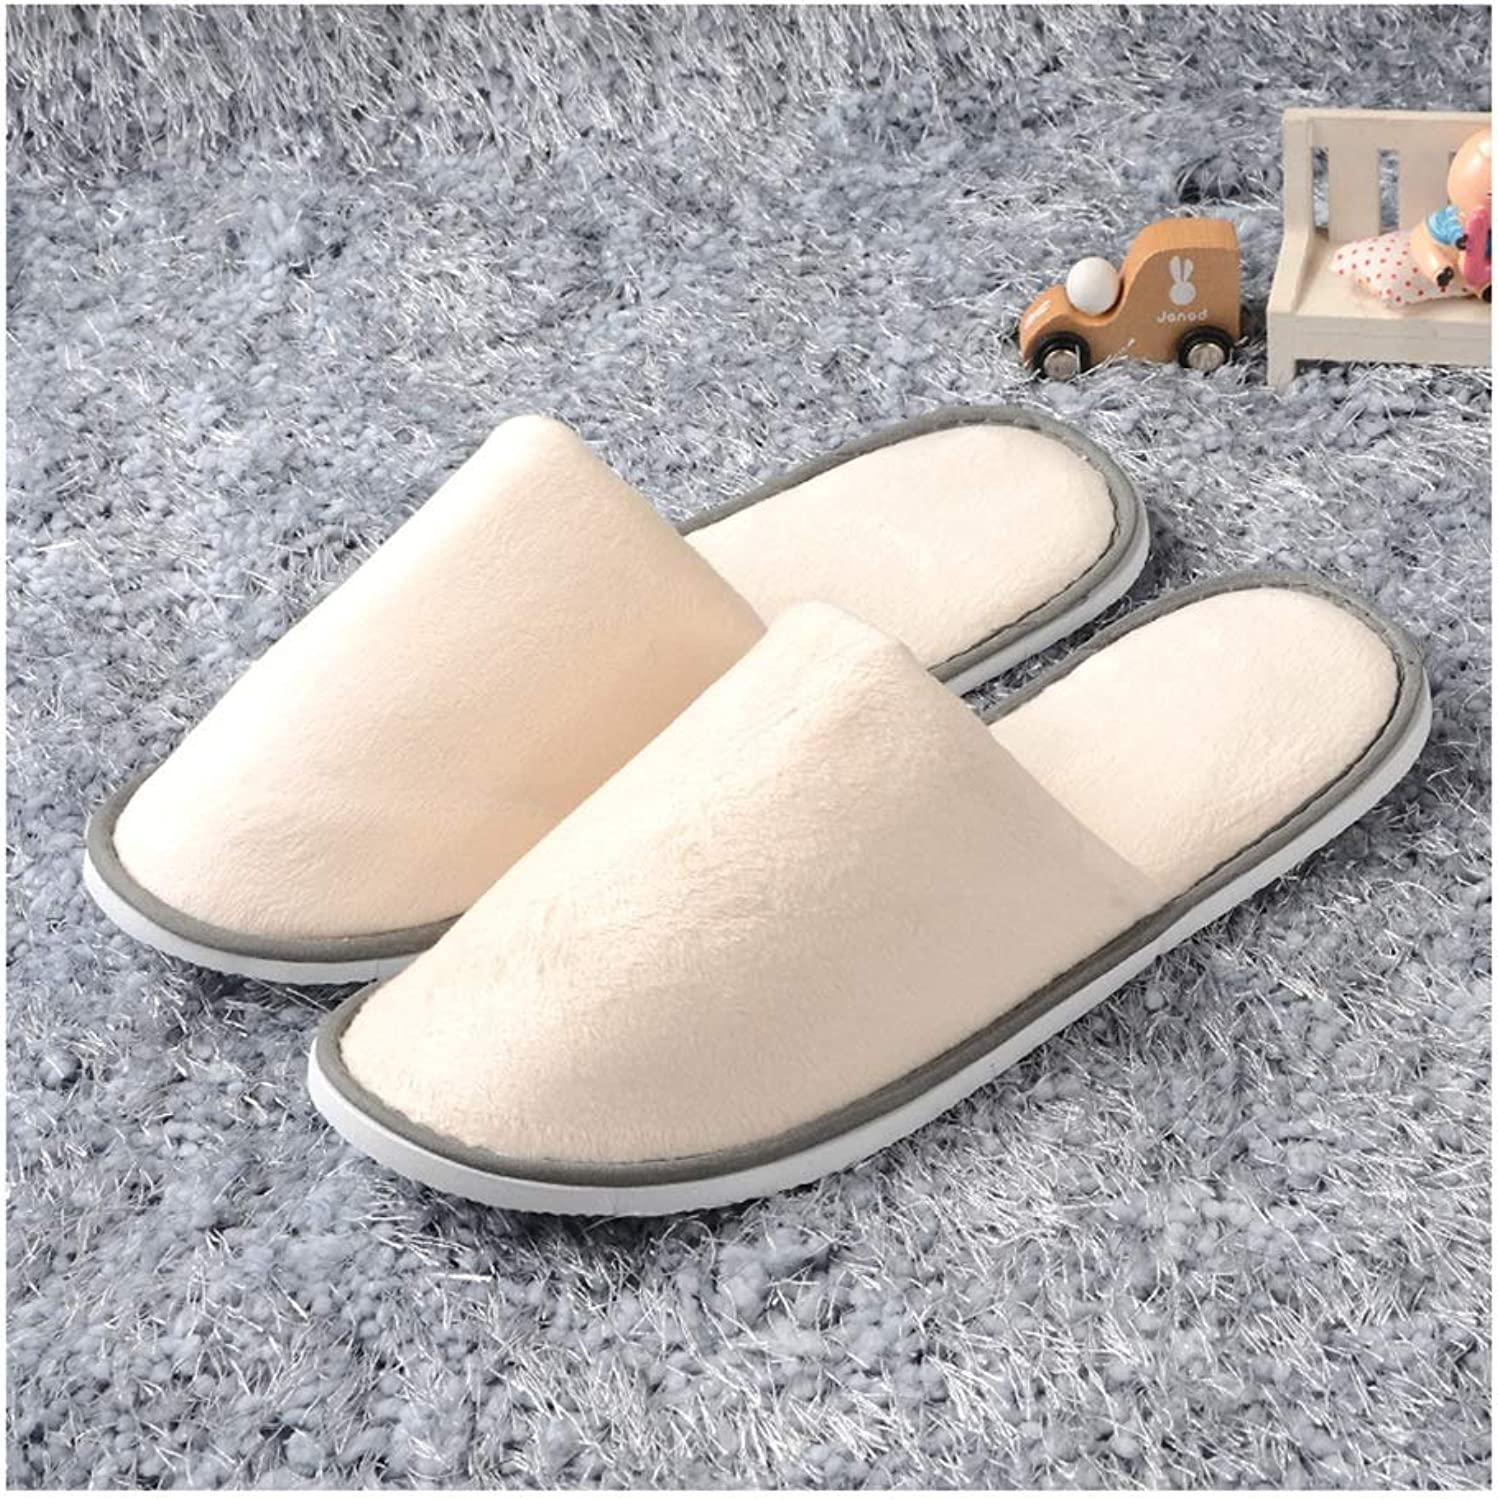 Disposable Slippers,spa Slippers Unisex Disposable Men's Slippers Men's Slippers Spa Slippers 20 Pairs Men's Hotel Foot Massage Slippers Women Non-Thickening Home Hospitality Guests